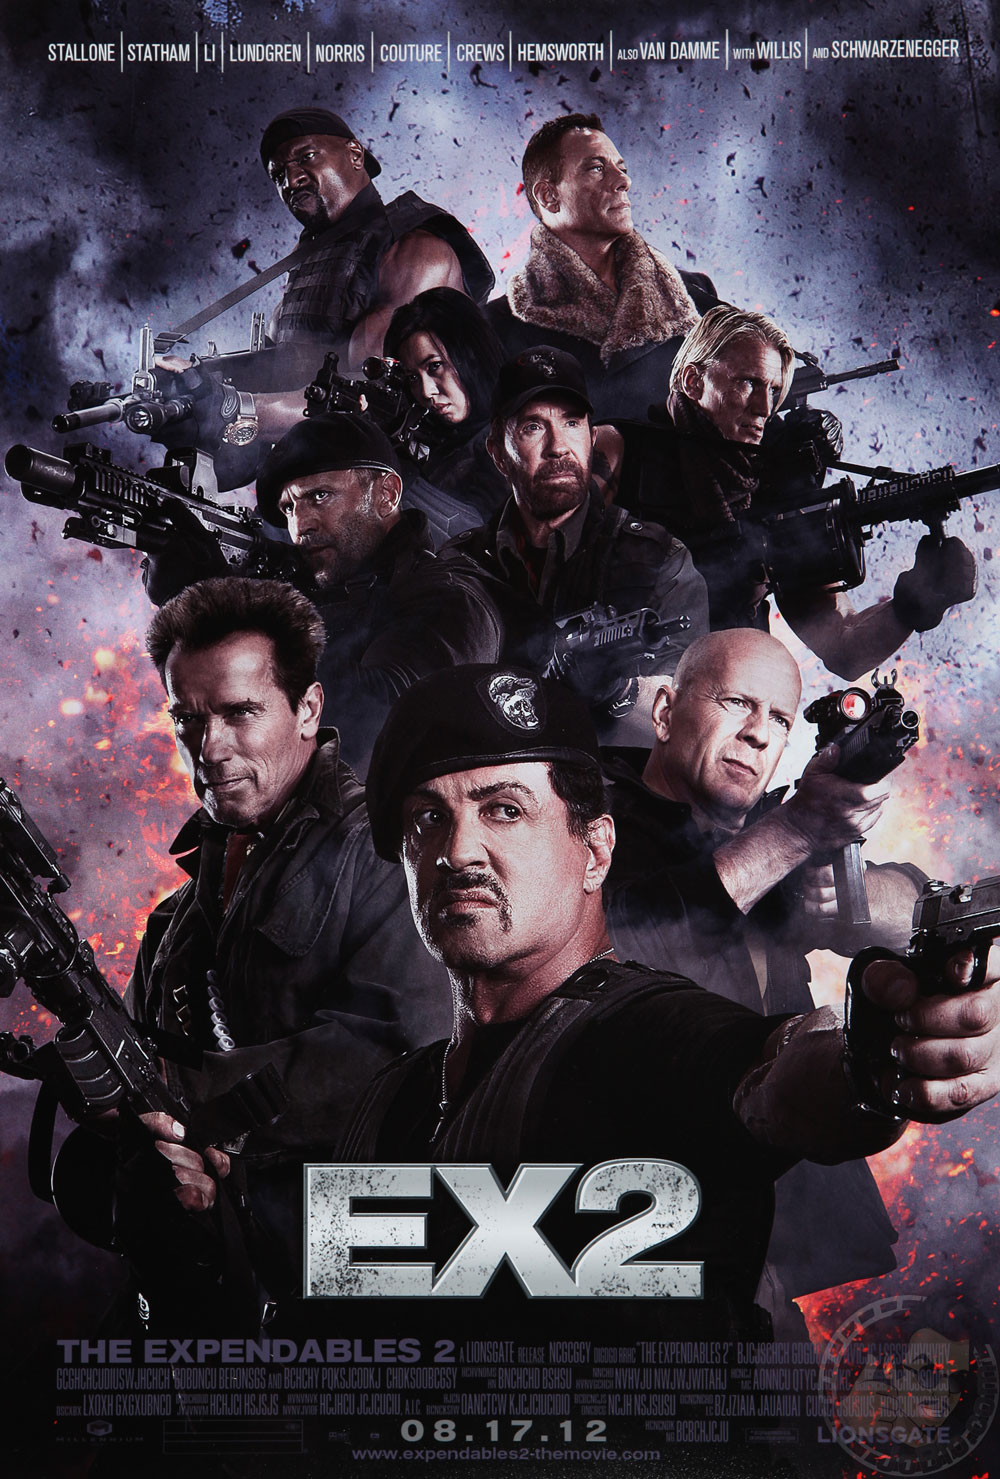 The-Expendables-2-Poster-US-02